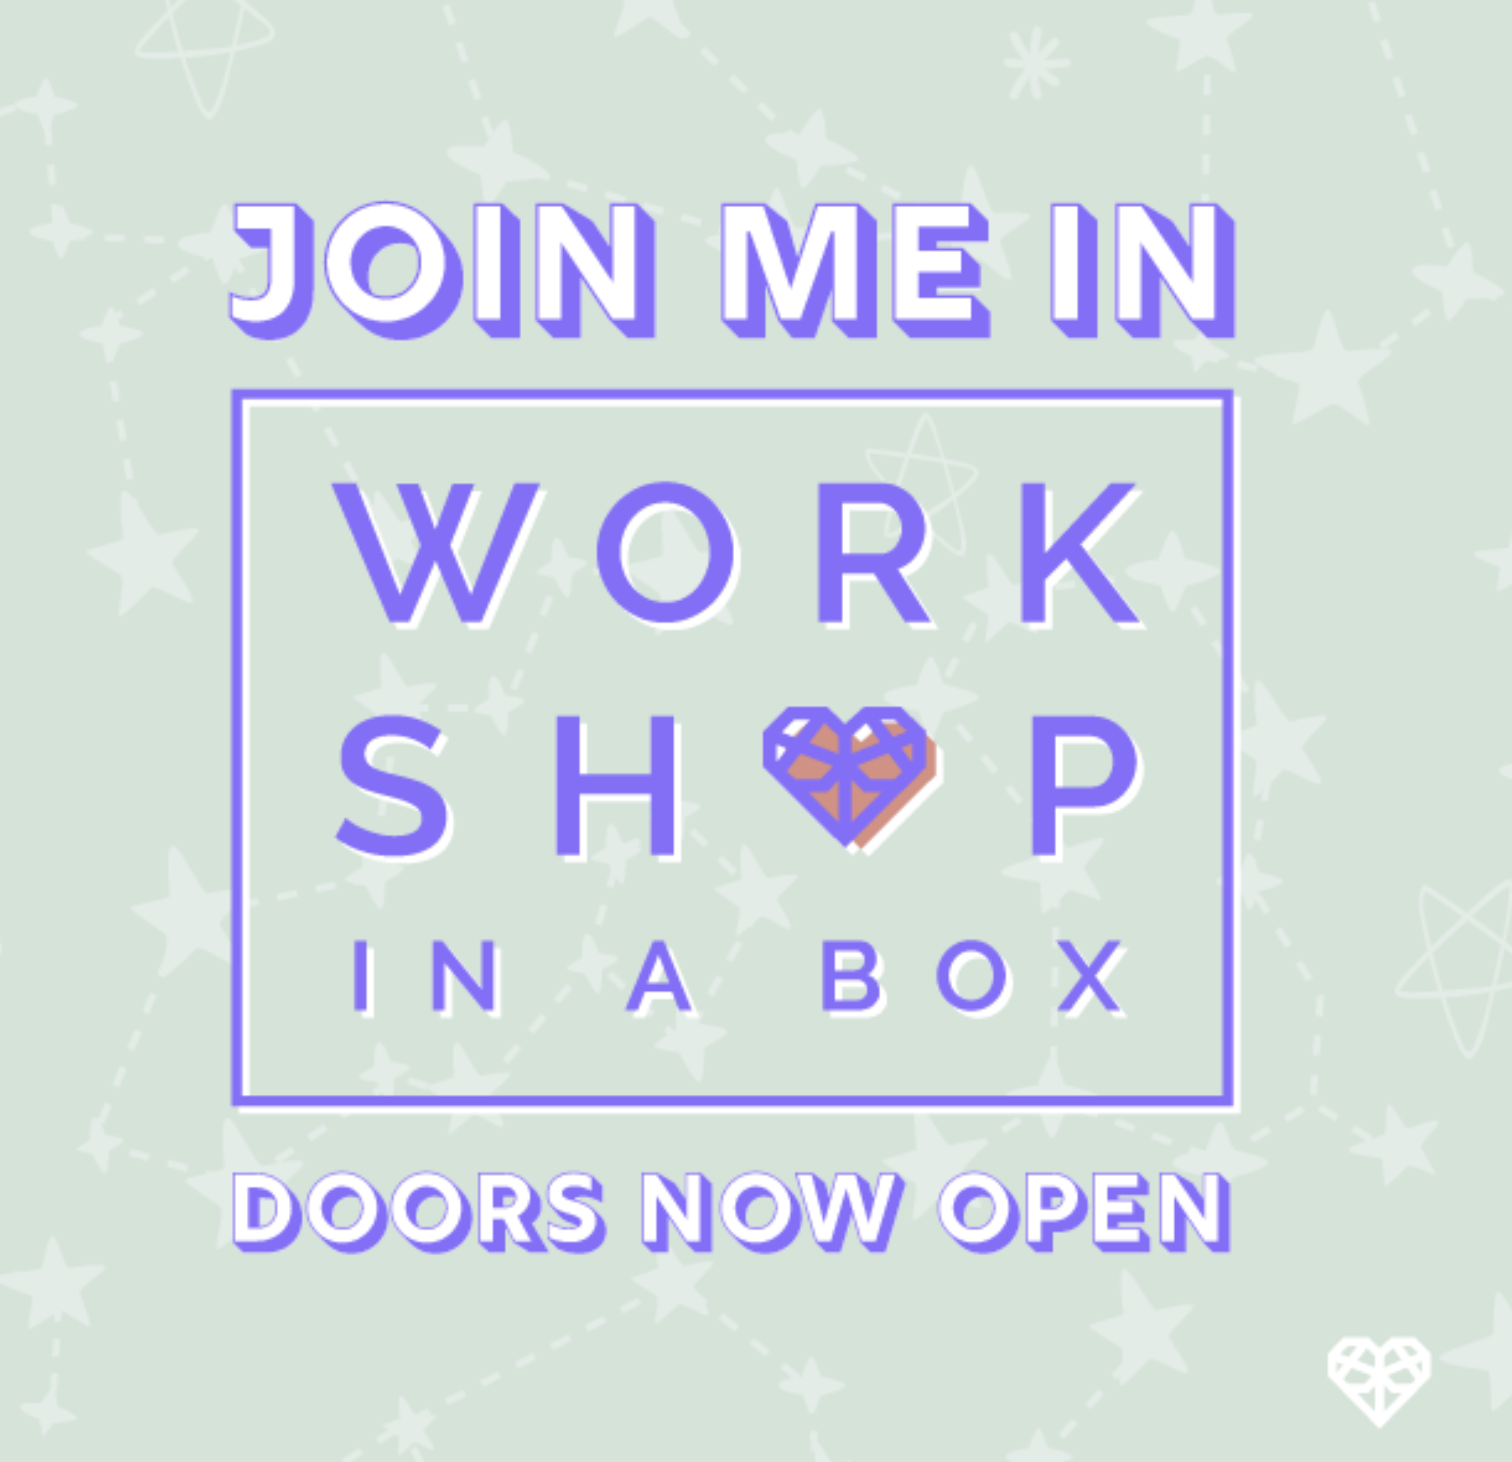 Tell your followers - you are about to LEVEL UP as a boss babe in Workshop In A Box! Make sure to tag @theworkshopinabox so we can see what you post! <3